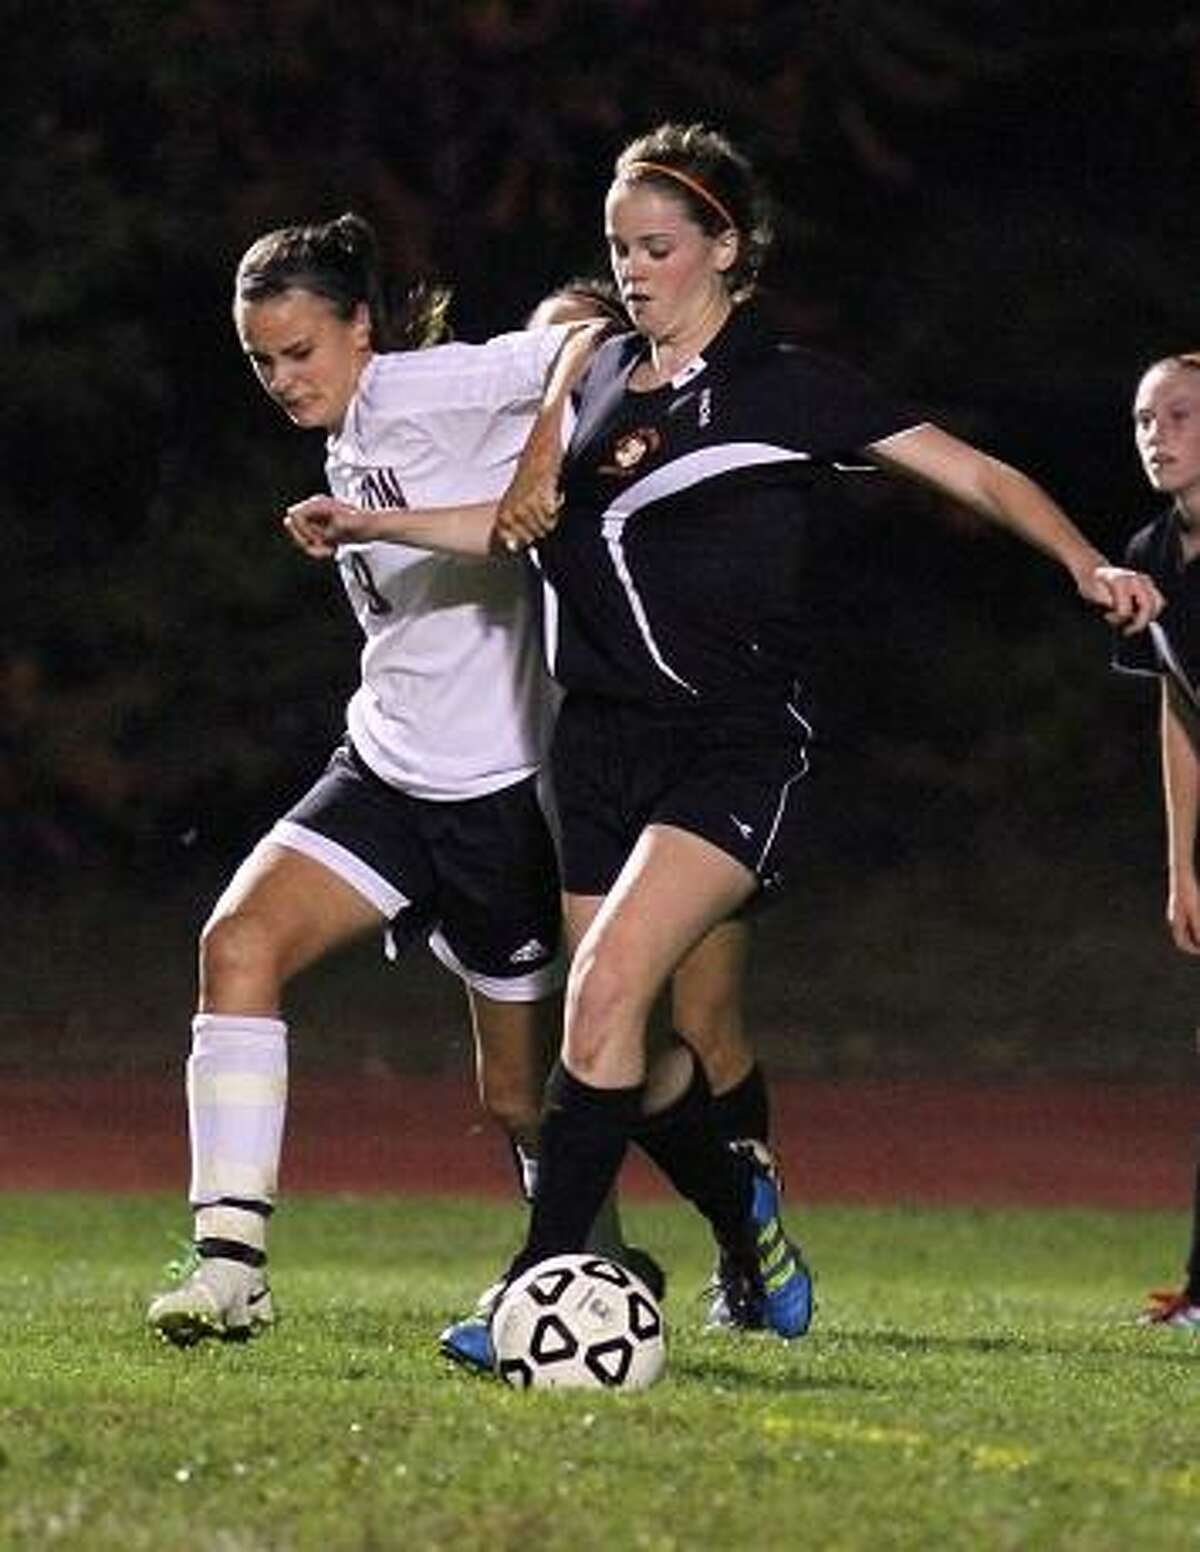 MARIANNE KILLACKEY/REGISTER CITIZEN Olivia Morrison of the Lady Raiders battles for the ball against Watertown's Amy Lamontagne.